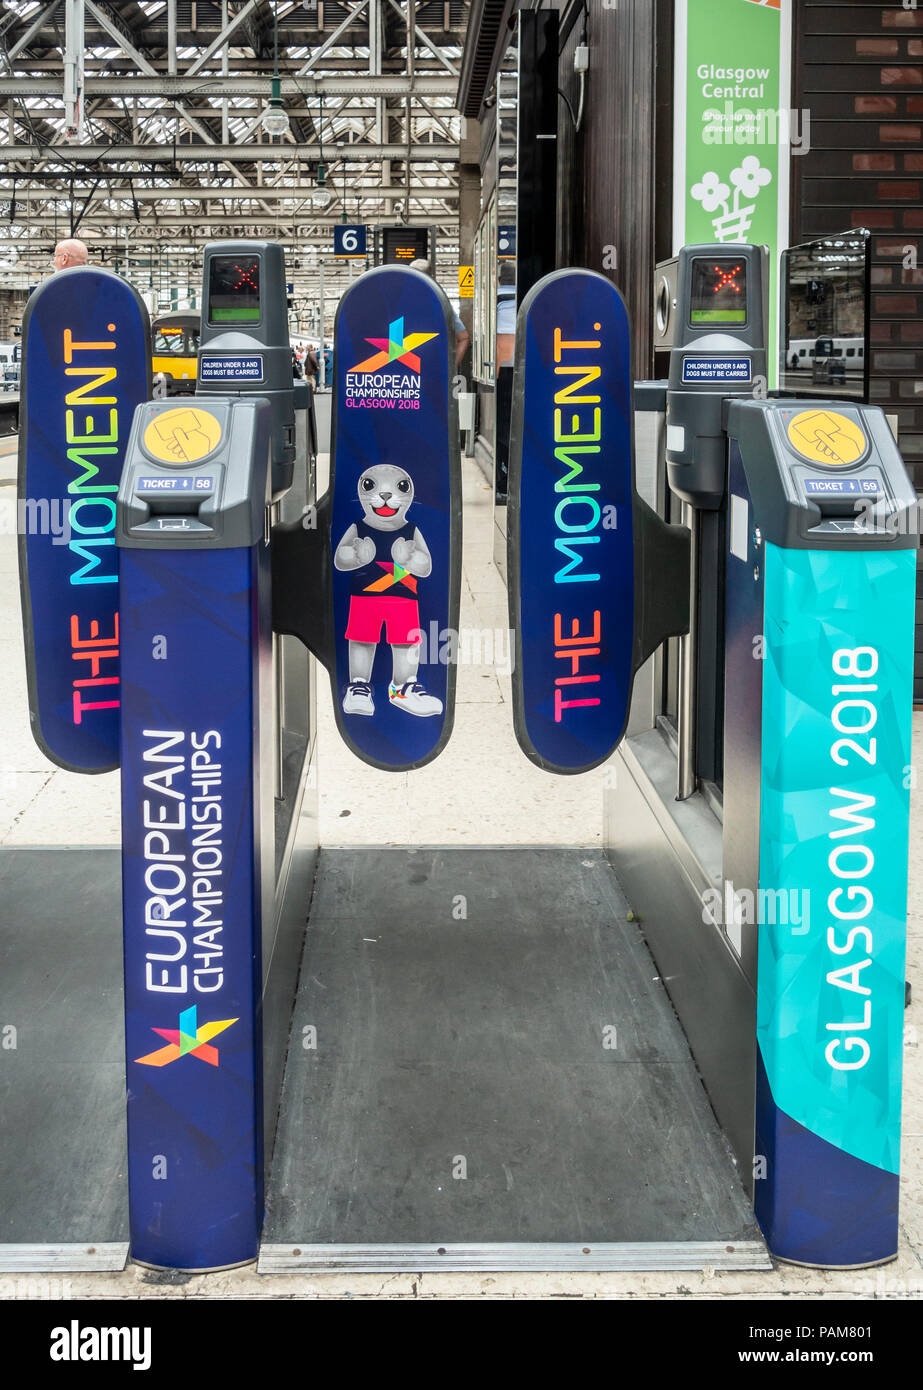 Barriers at Glasgow Central Station covered wtih branding reflecting Glasgow 2018, the European Championships, a multi-sports event hosted in Glasgow - Stock Image